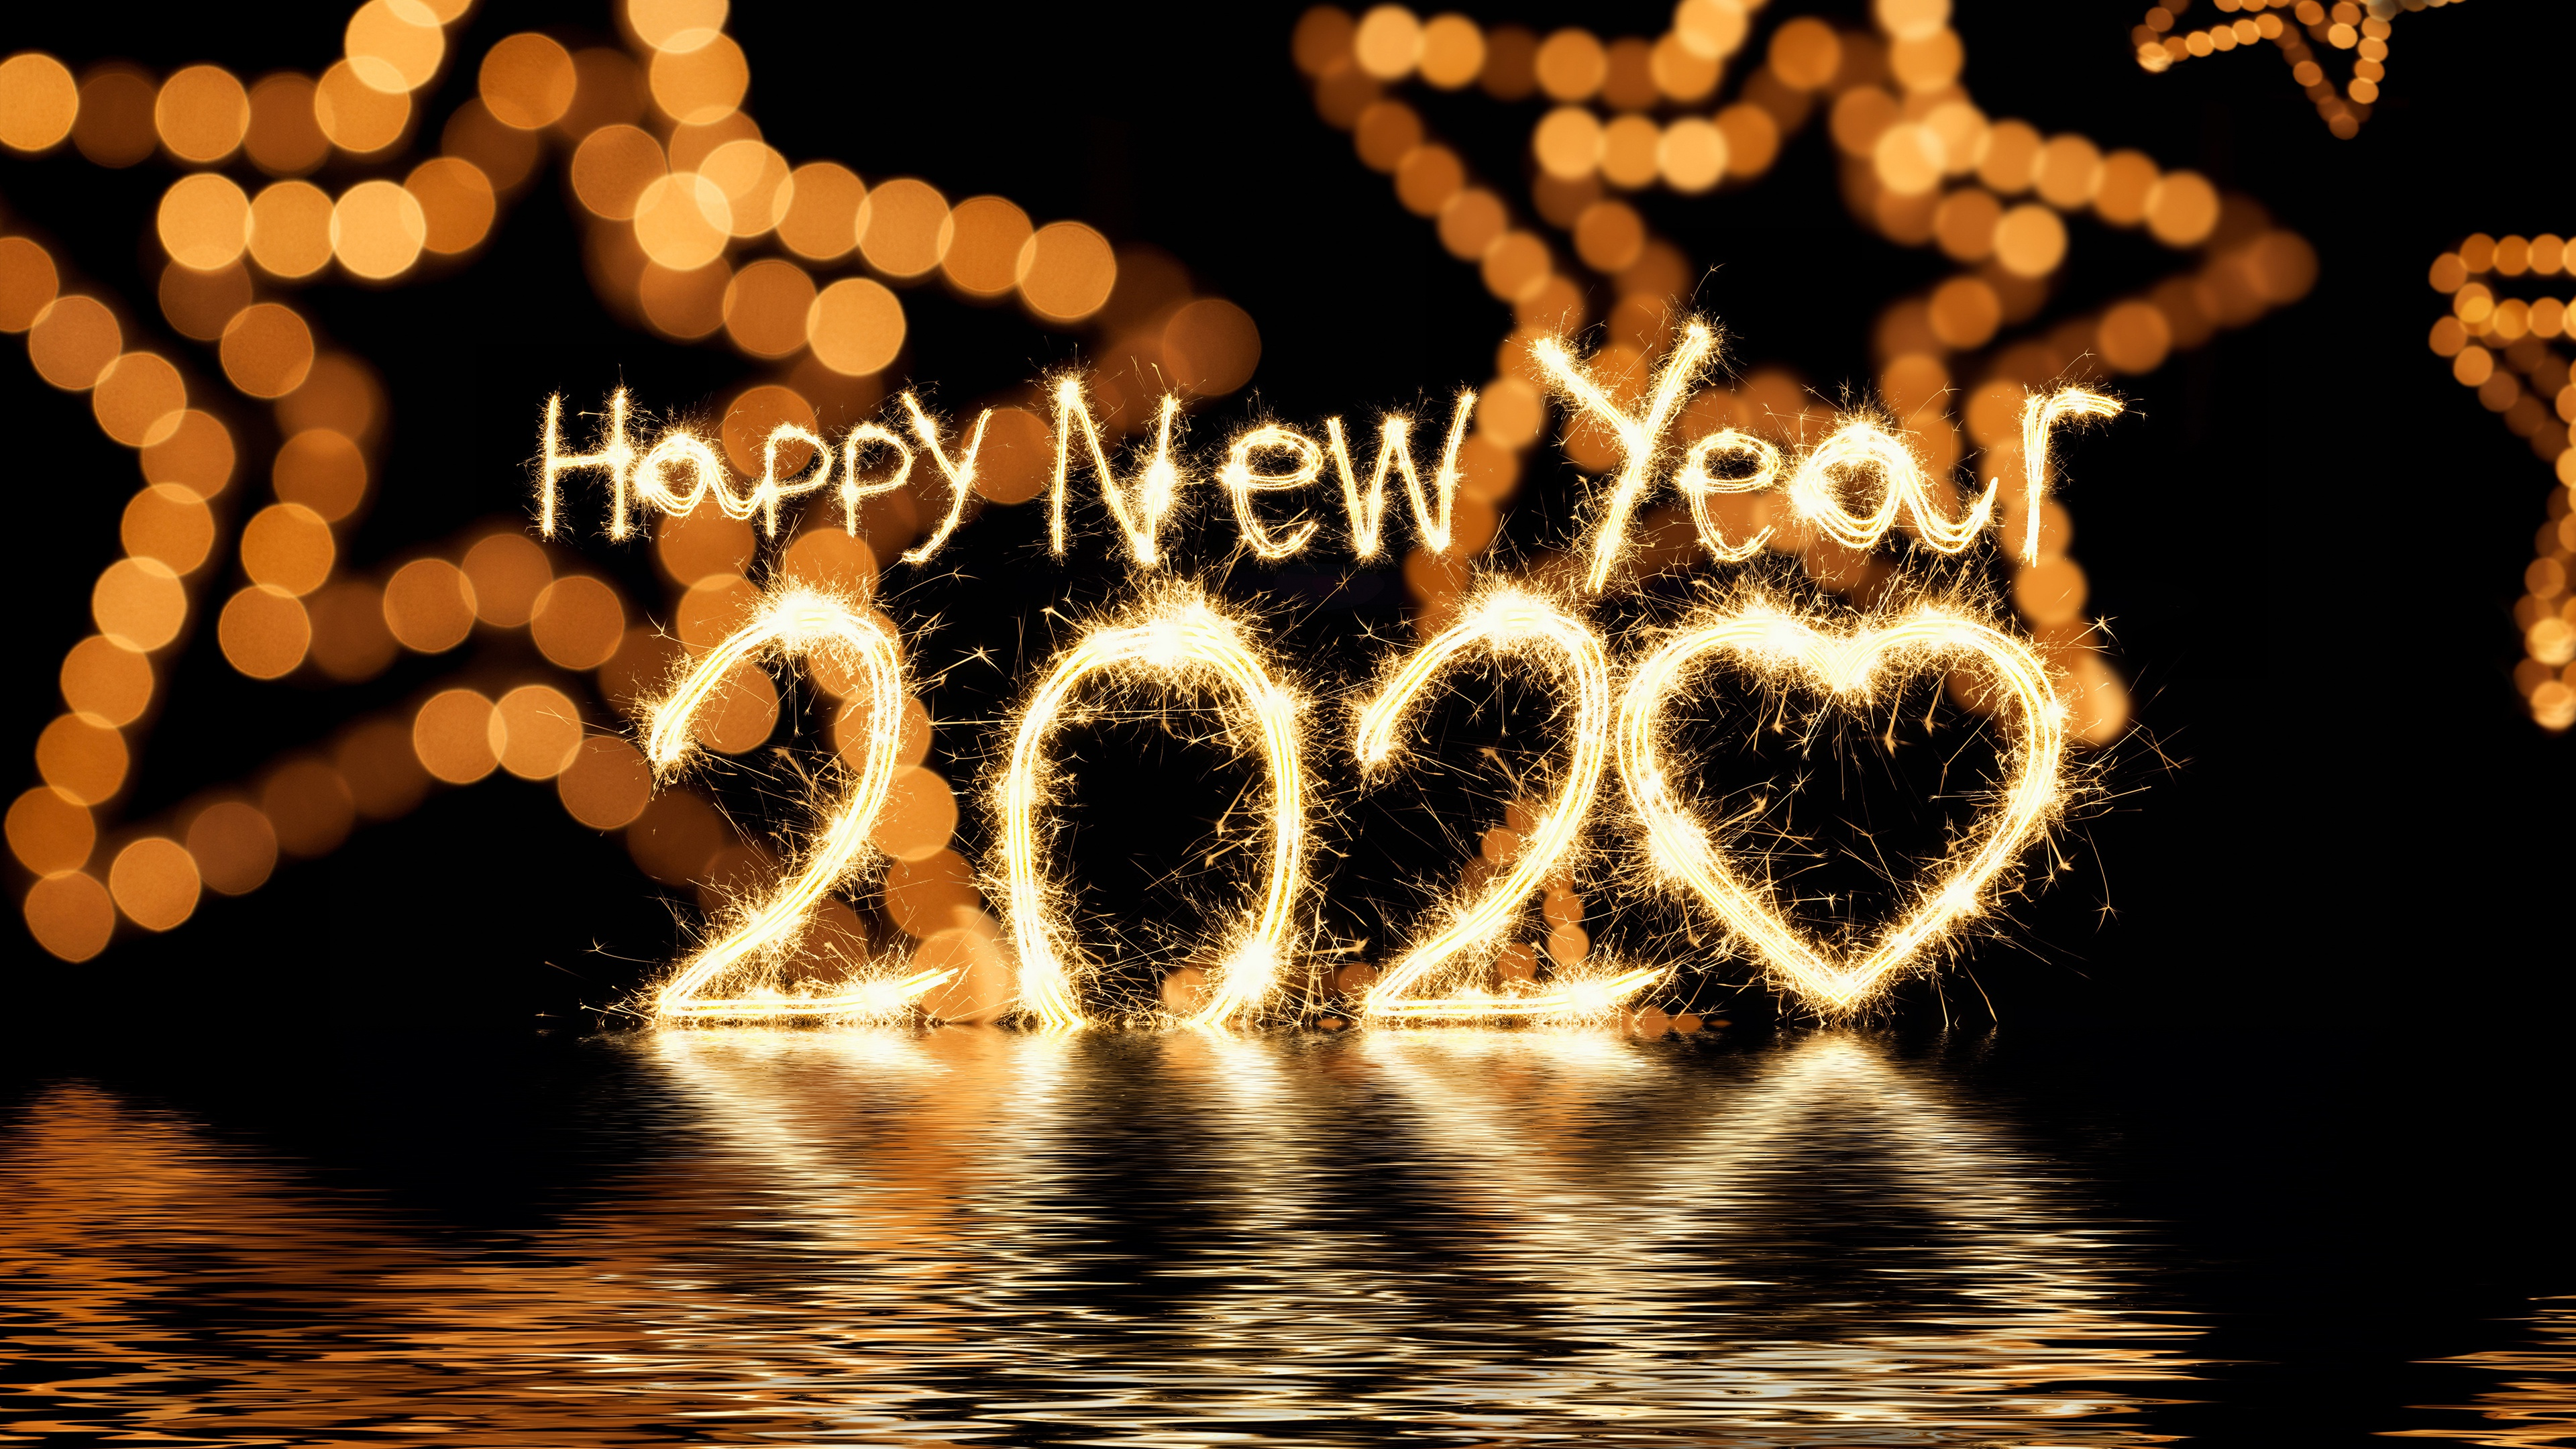 Happy New Year 2020 HD Wallpaper 4k for Desktop